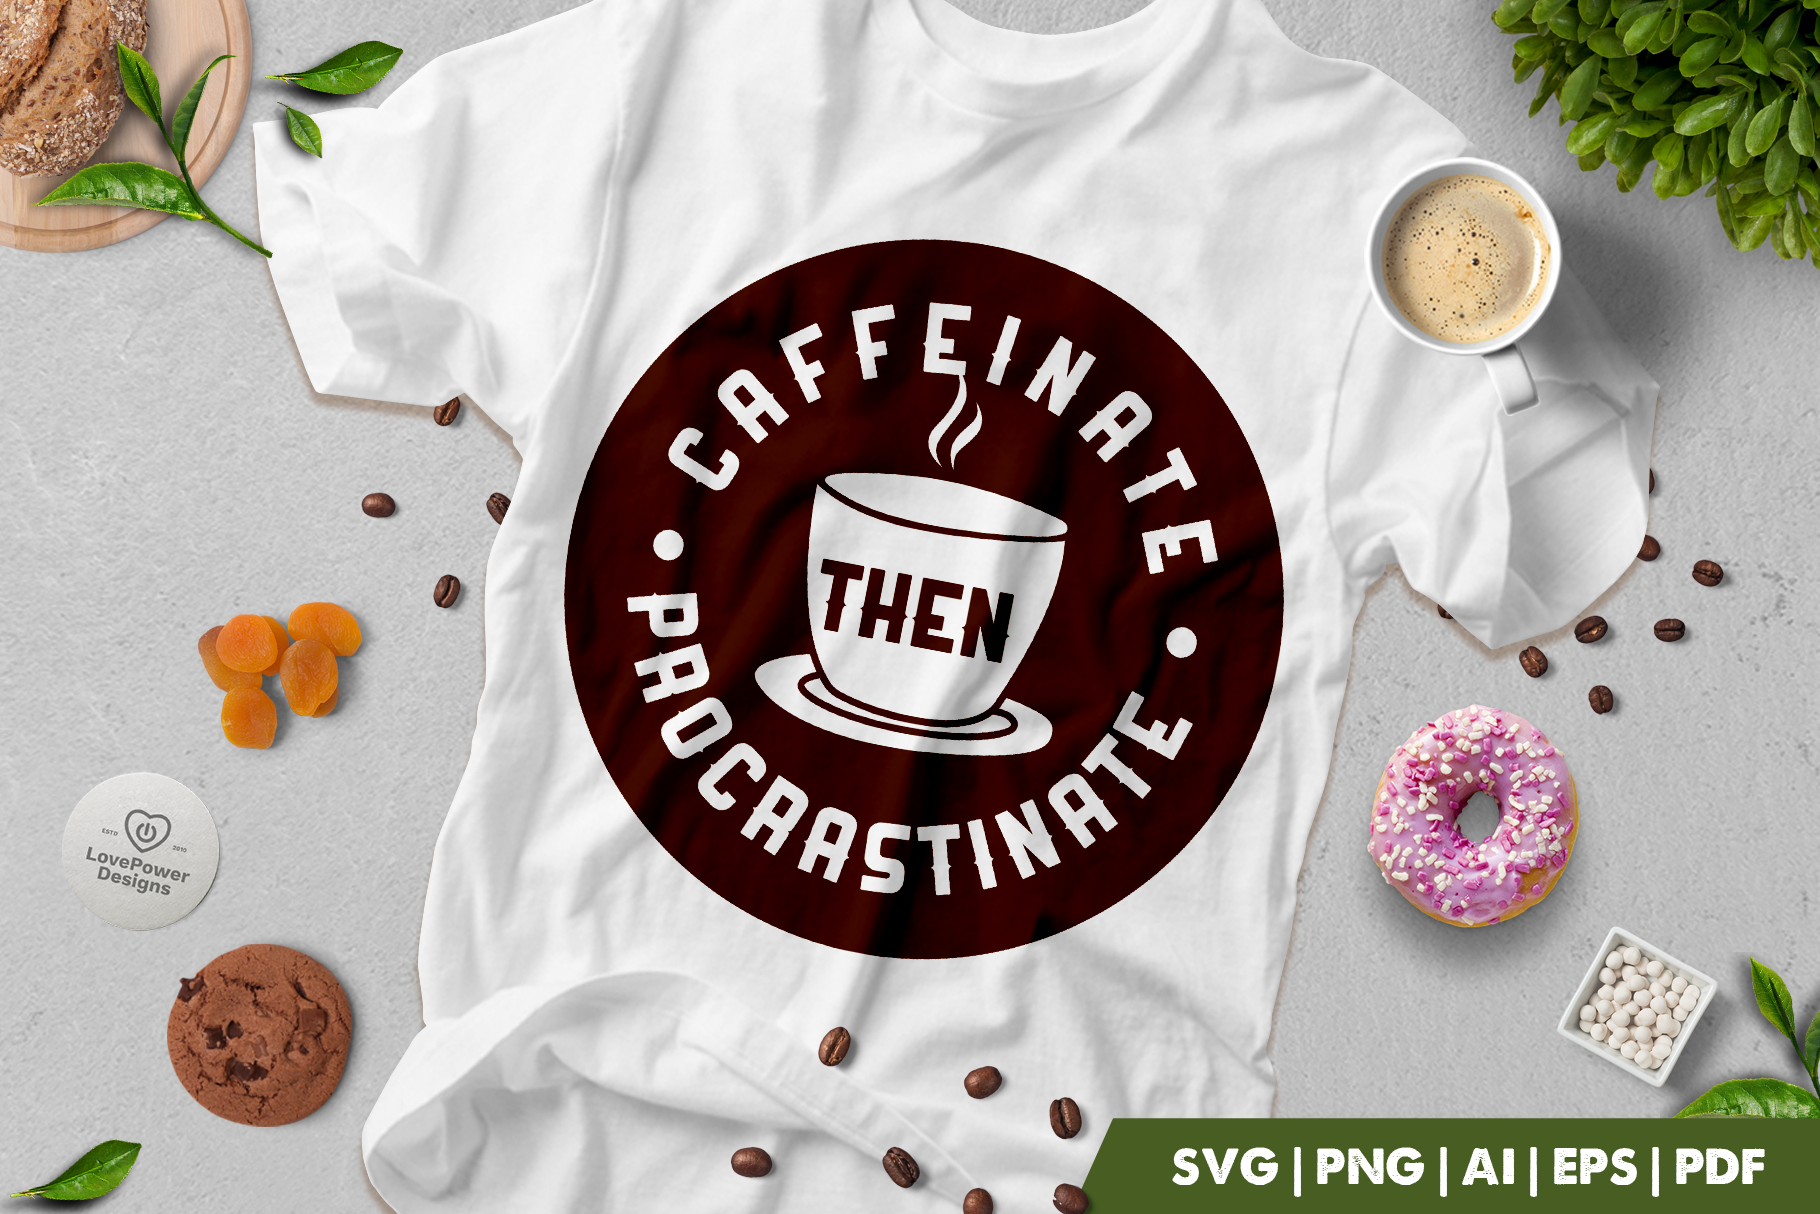 Coffee SVG | Caffeinate Then Procrastinate | Coffee Quotes